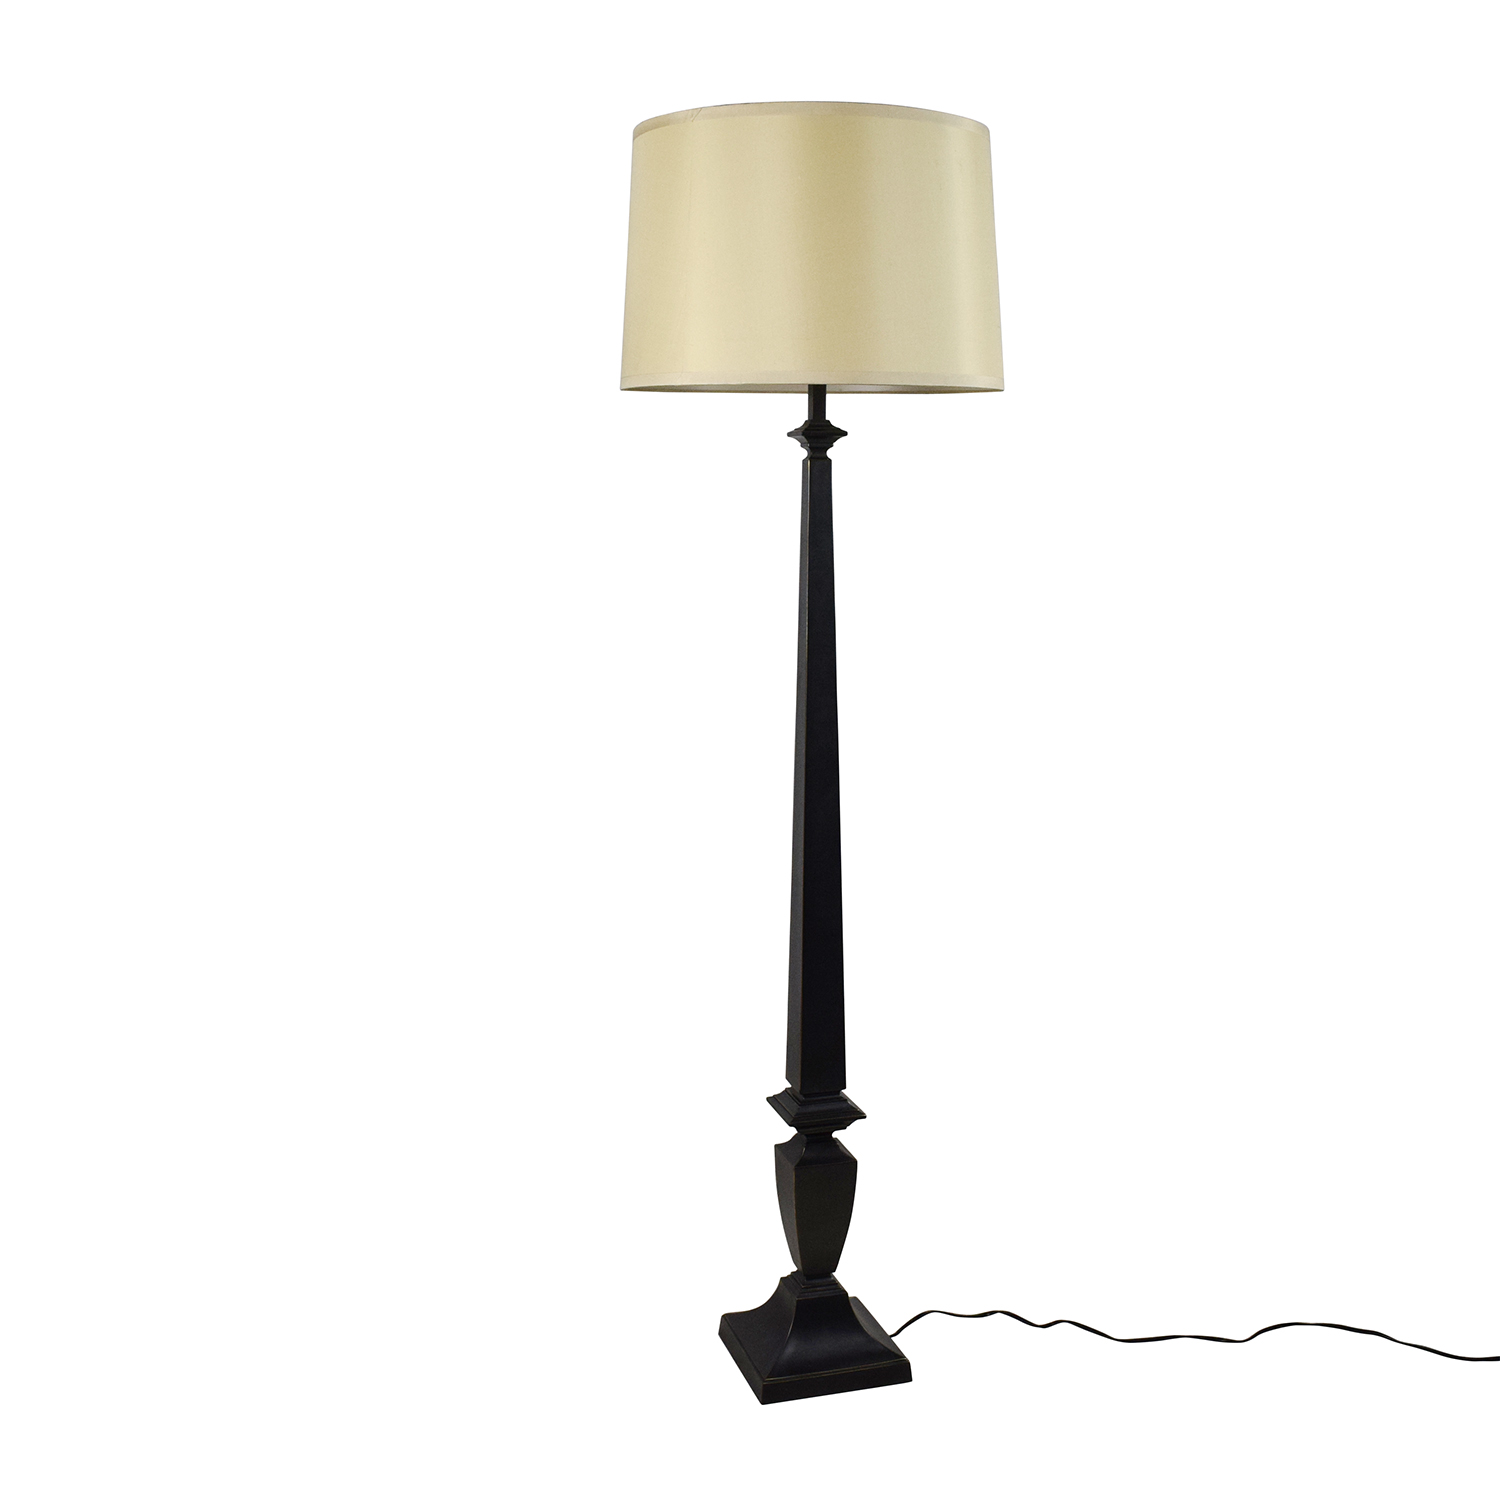 Restoration Hardware Floor Lamp Coupon Code - Restoration hardware floor lamps